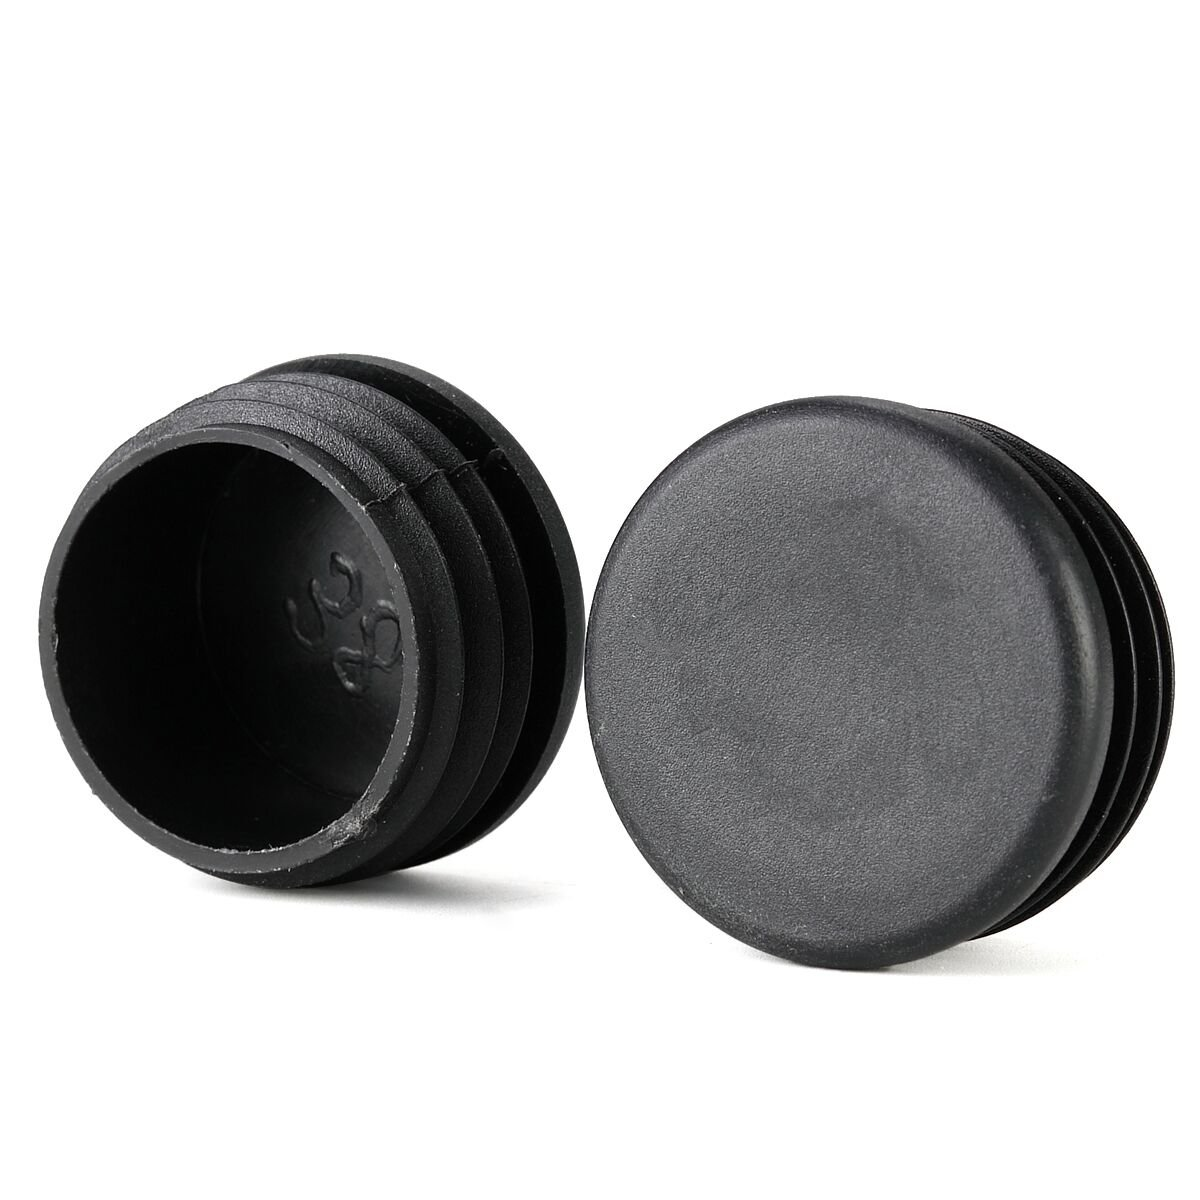 1 1 2 inch round cup patio furniture insert glide end black cap for outdoor wrought iron tables chairs 25 pack amazon com